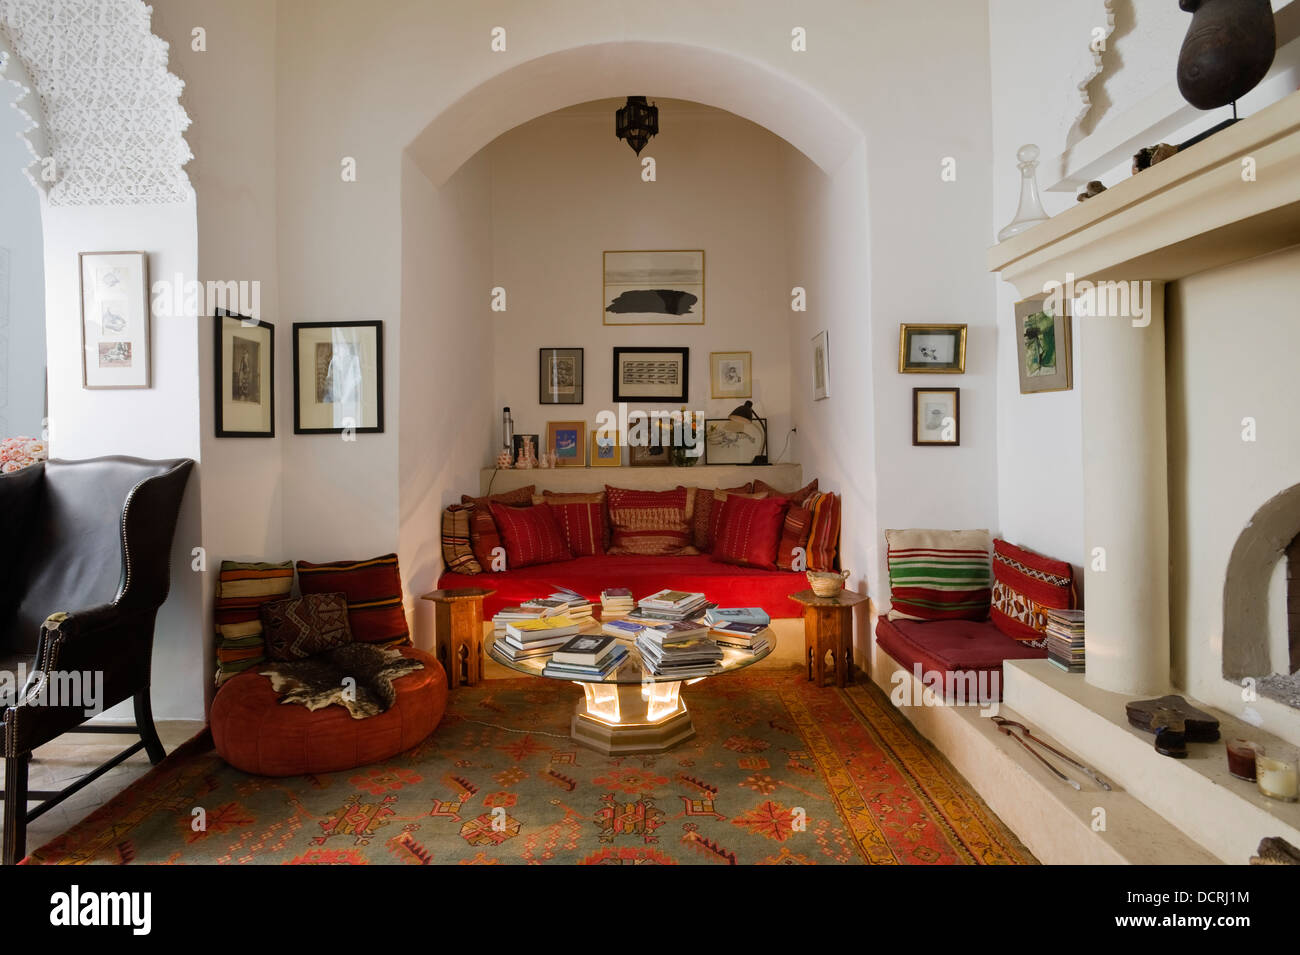 cheap moroccan furniture. Moroccan Style Living Area - Stock Image Cheap Furniture